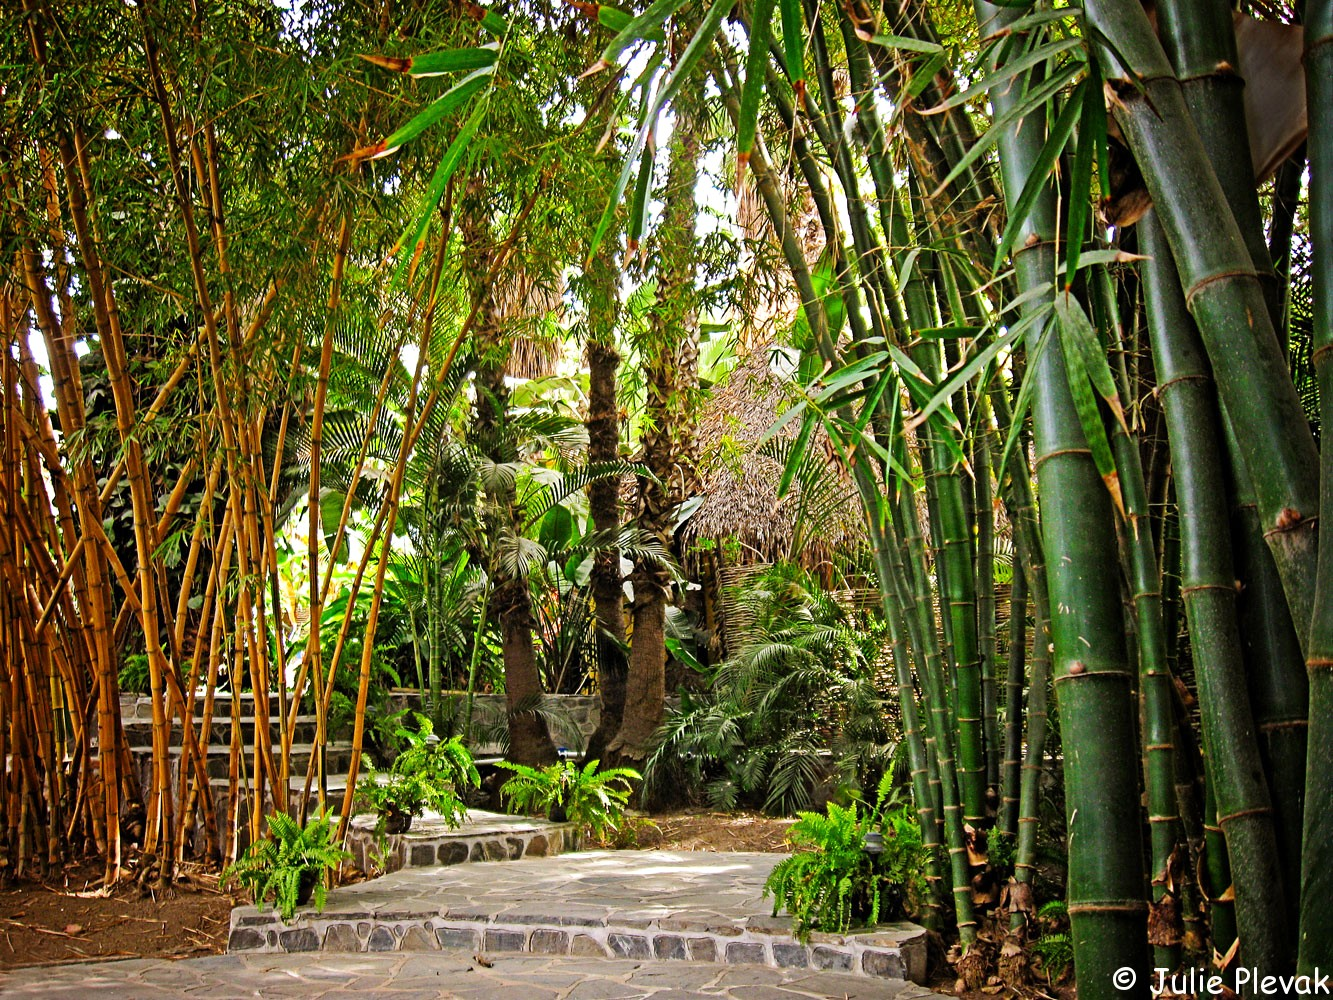 Bamboo jungle, Todos Santos, Mexico